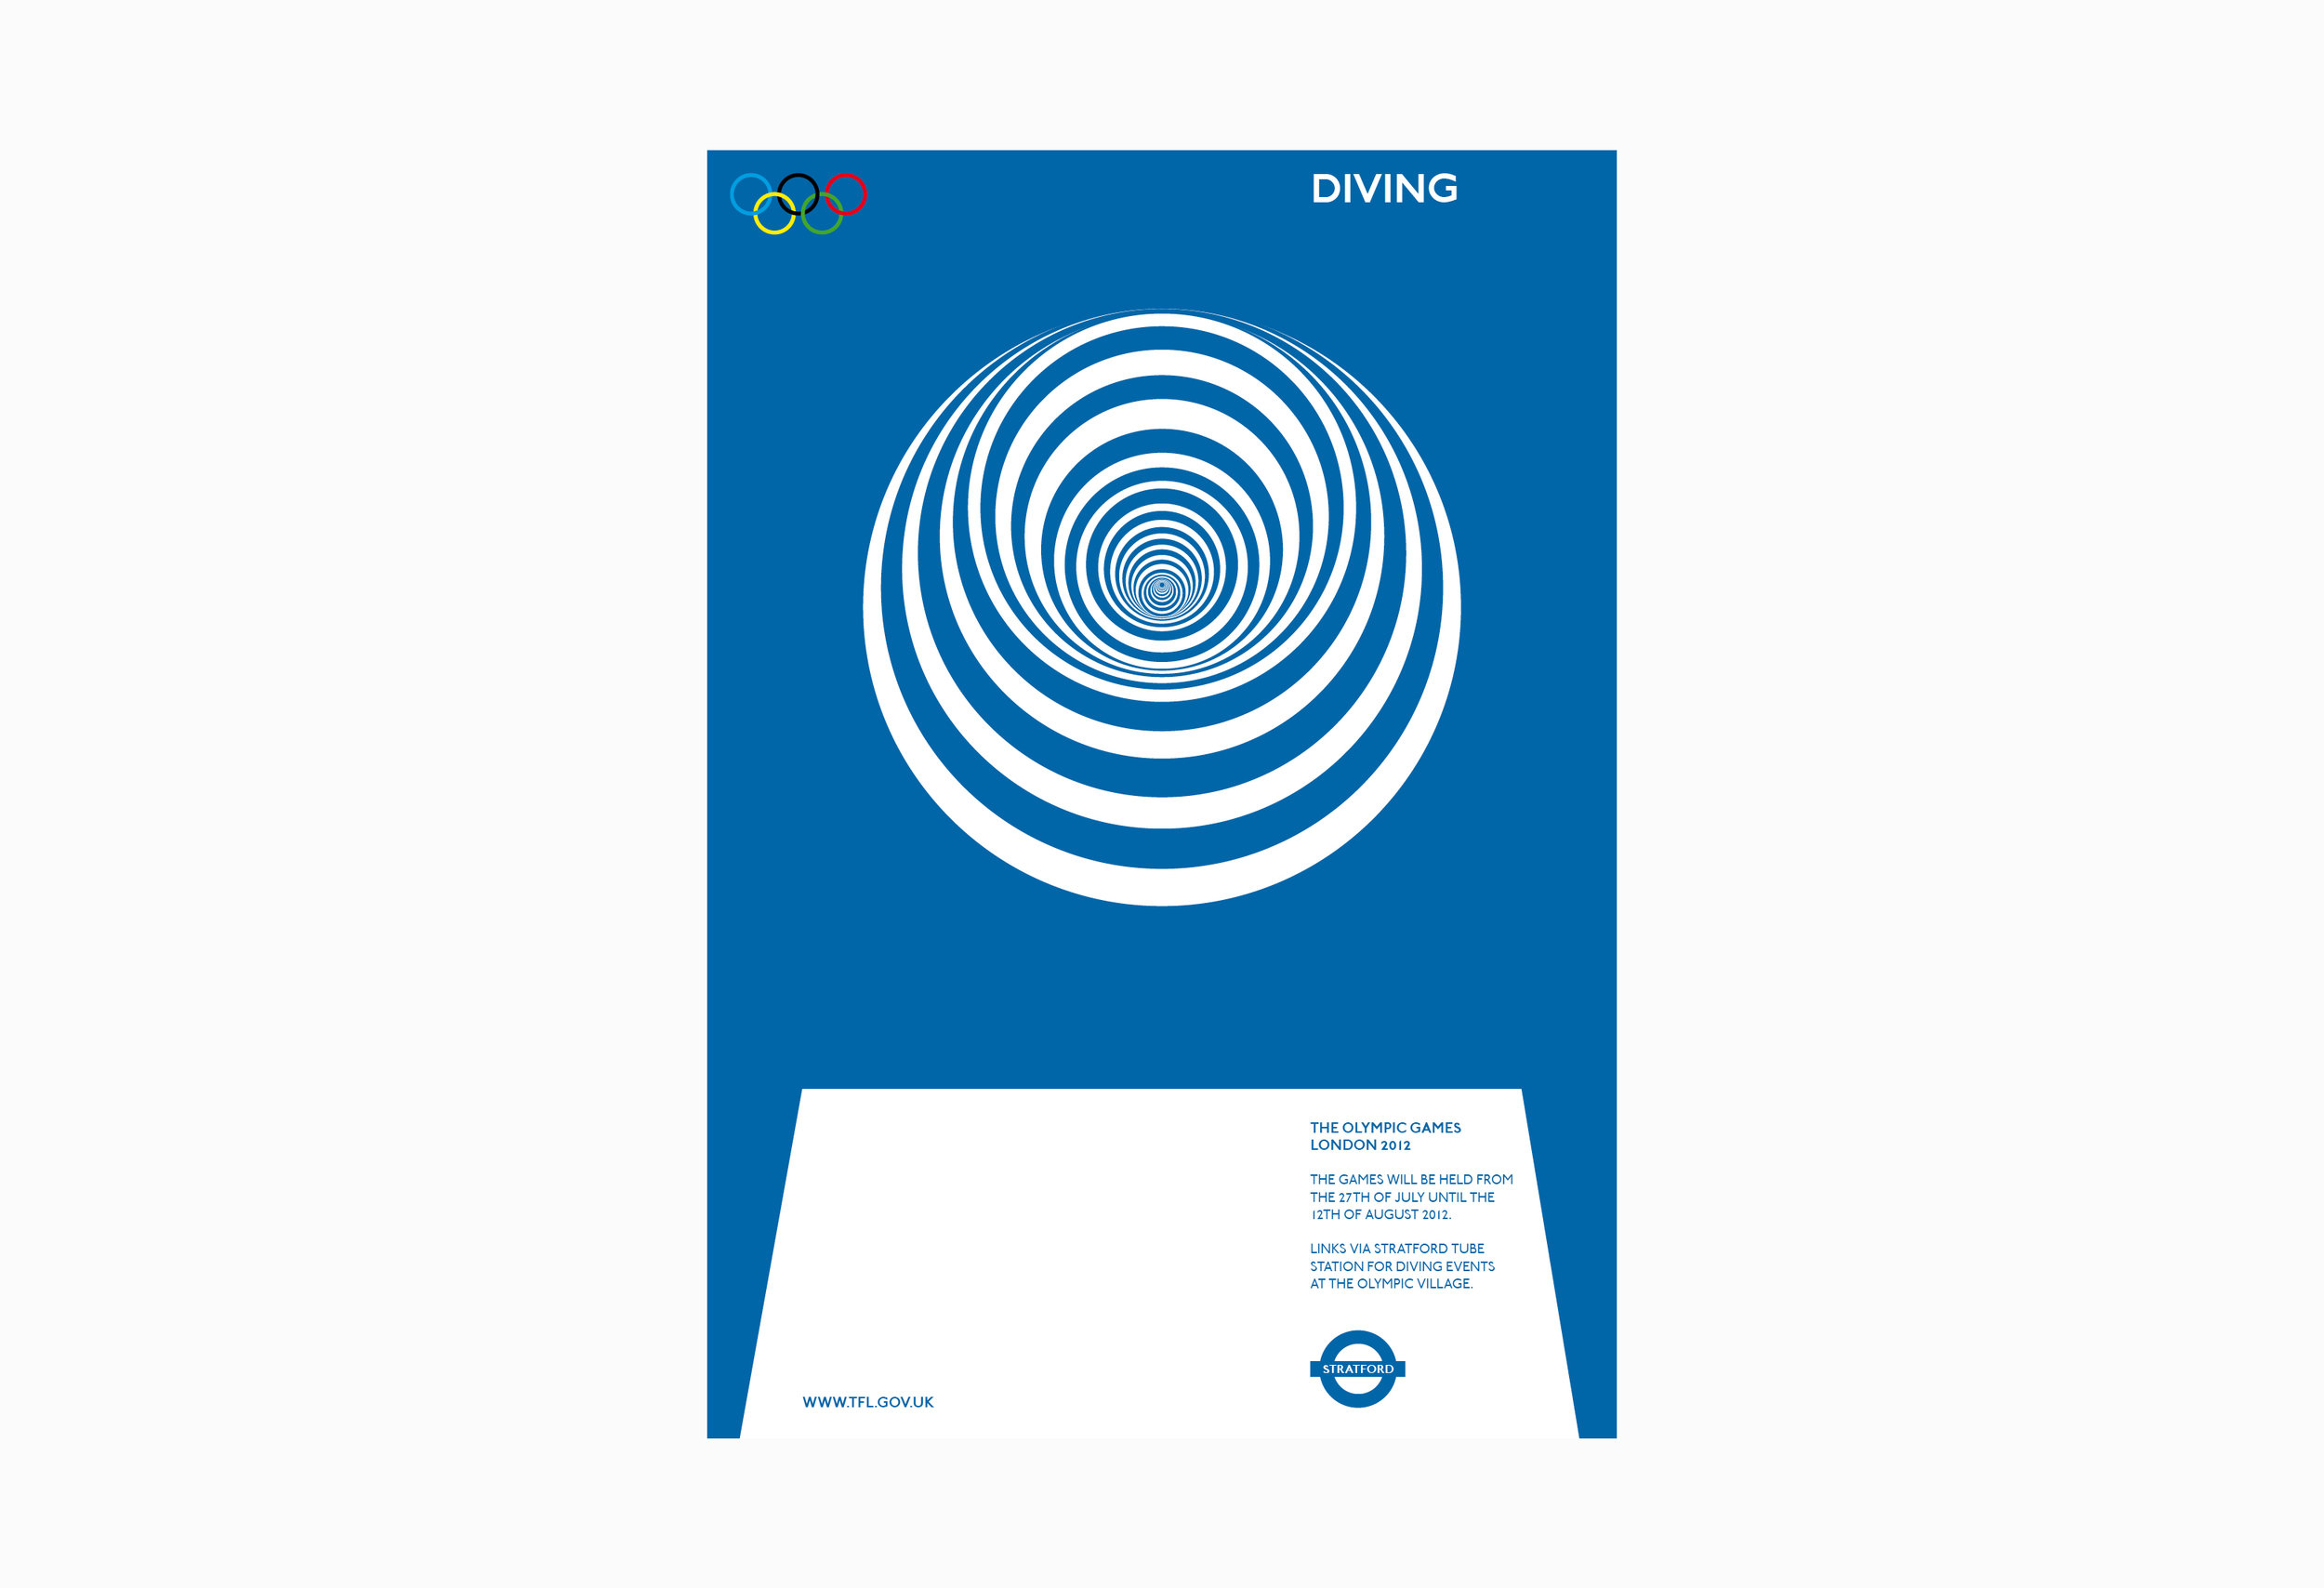 Olympic poster designs_wayfinding_design_Alan_Clarke-Symonds_graphic_design_project_UX design2.jpg